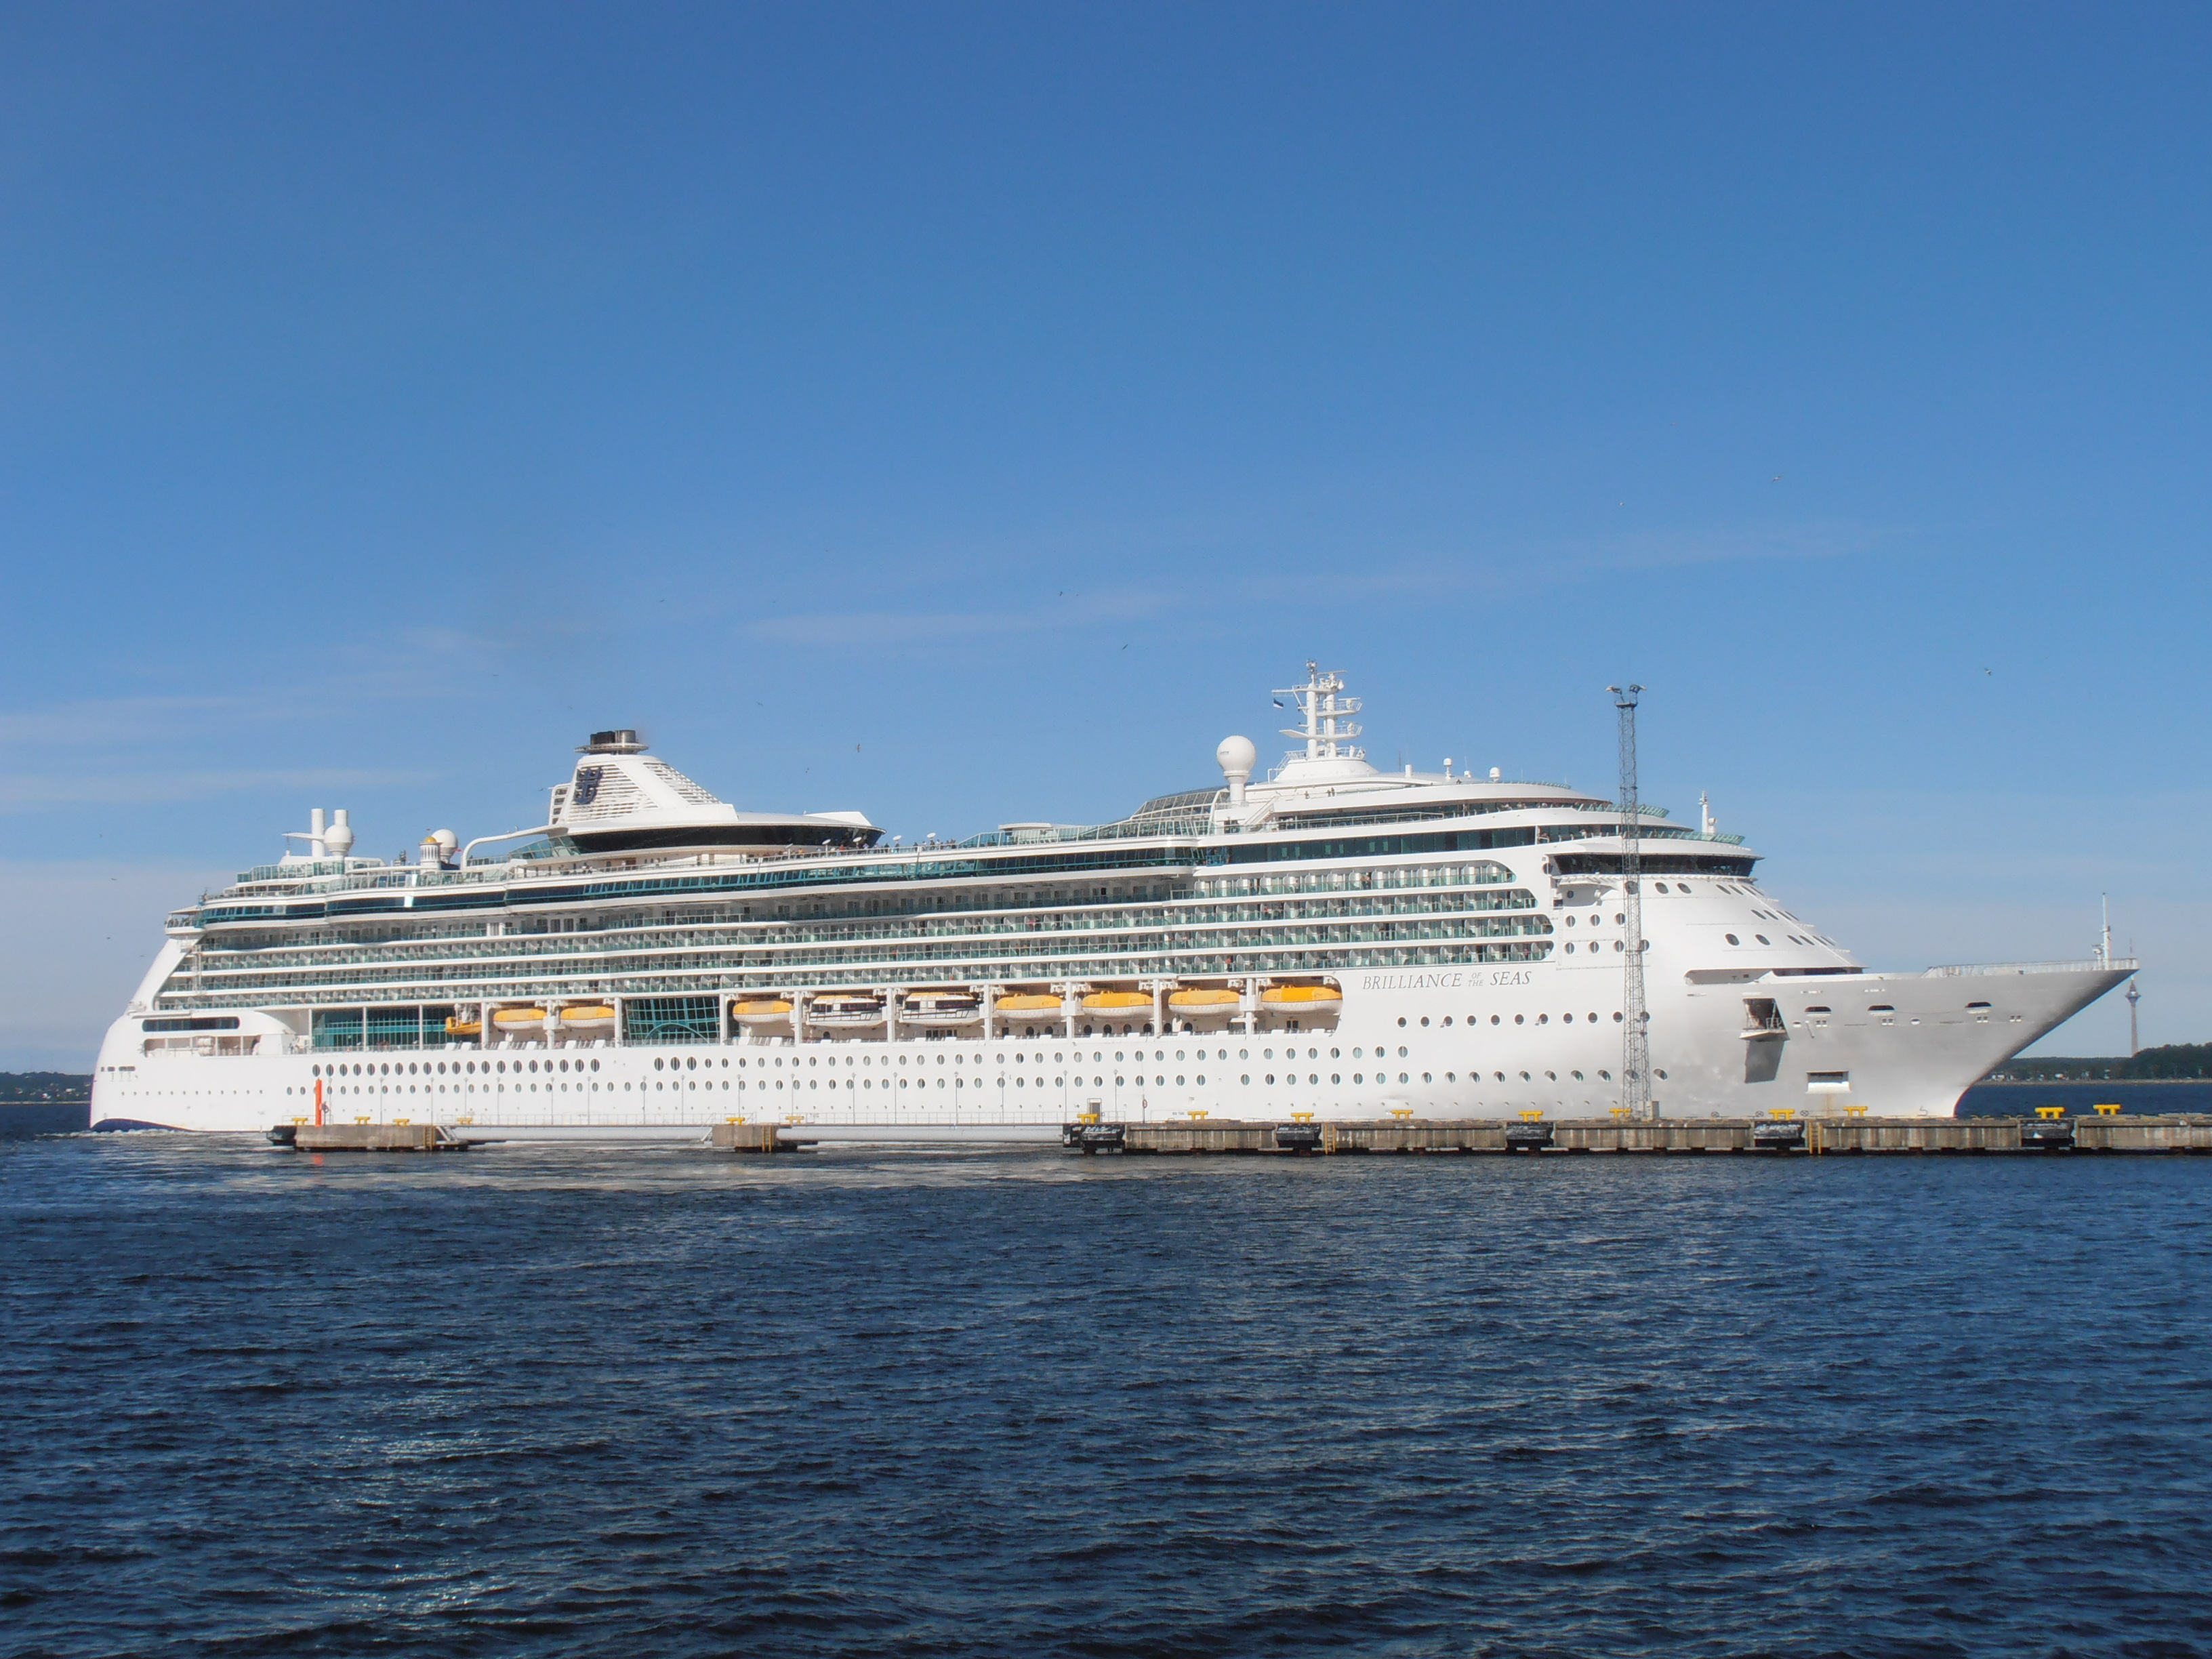 File:Brilliance of the Seas in Tallinn 9 August 2012.JPG - Wikimedia Commons